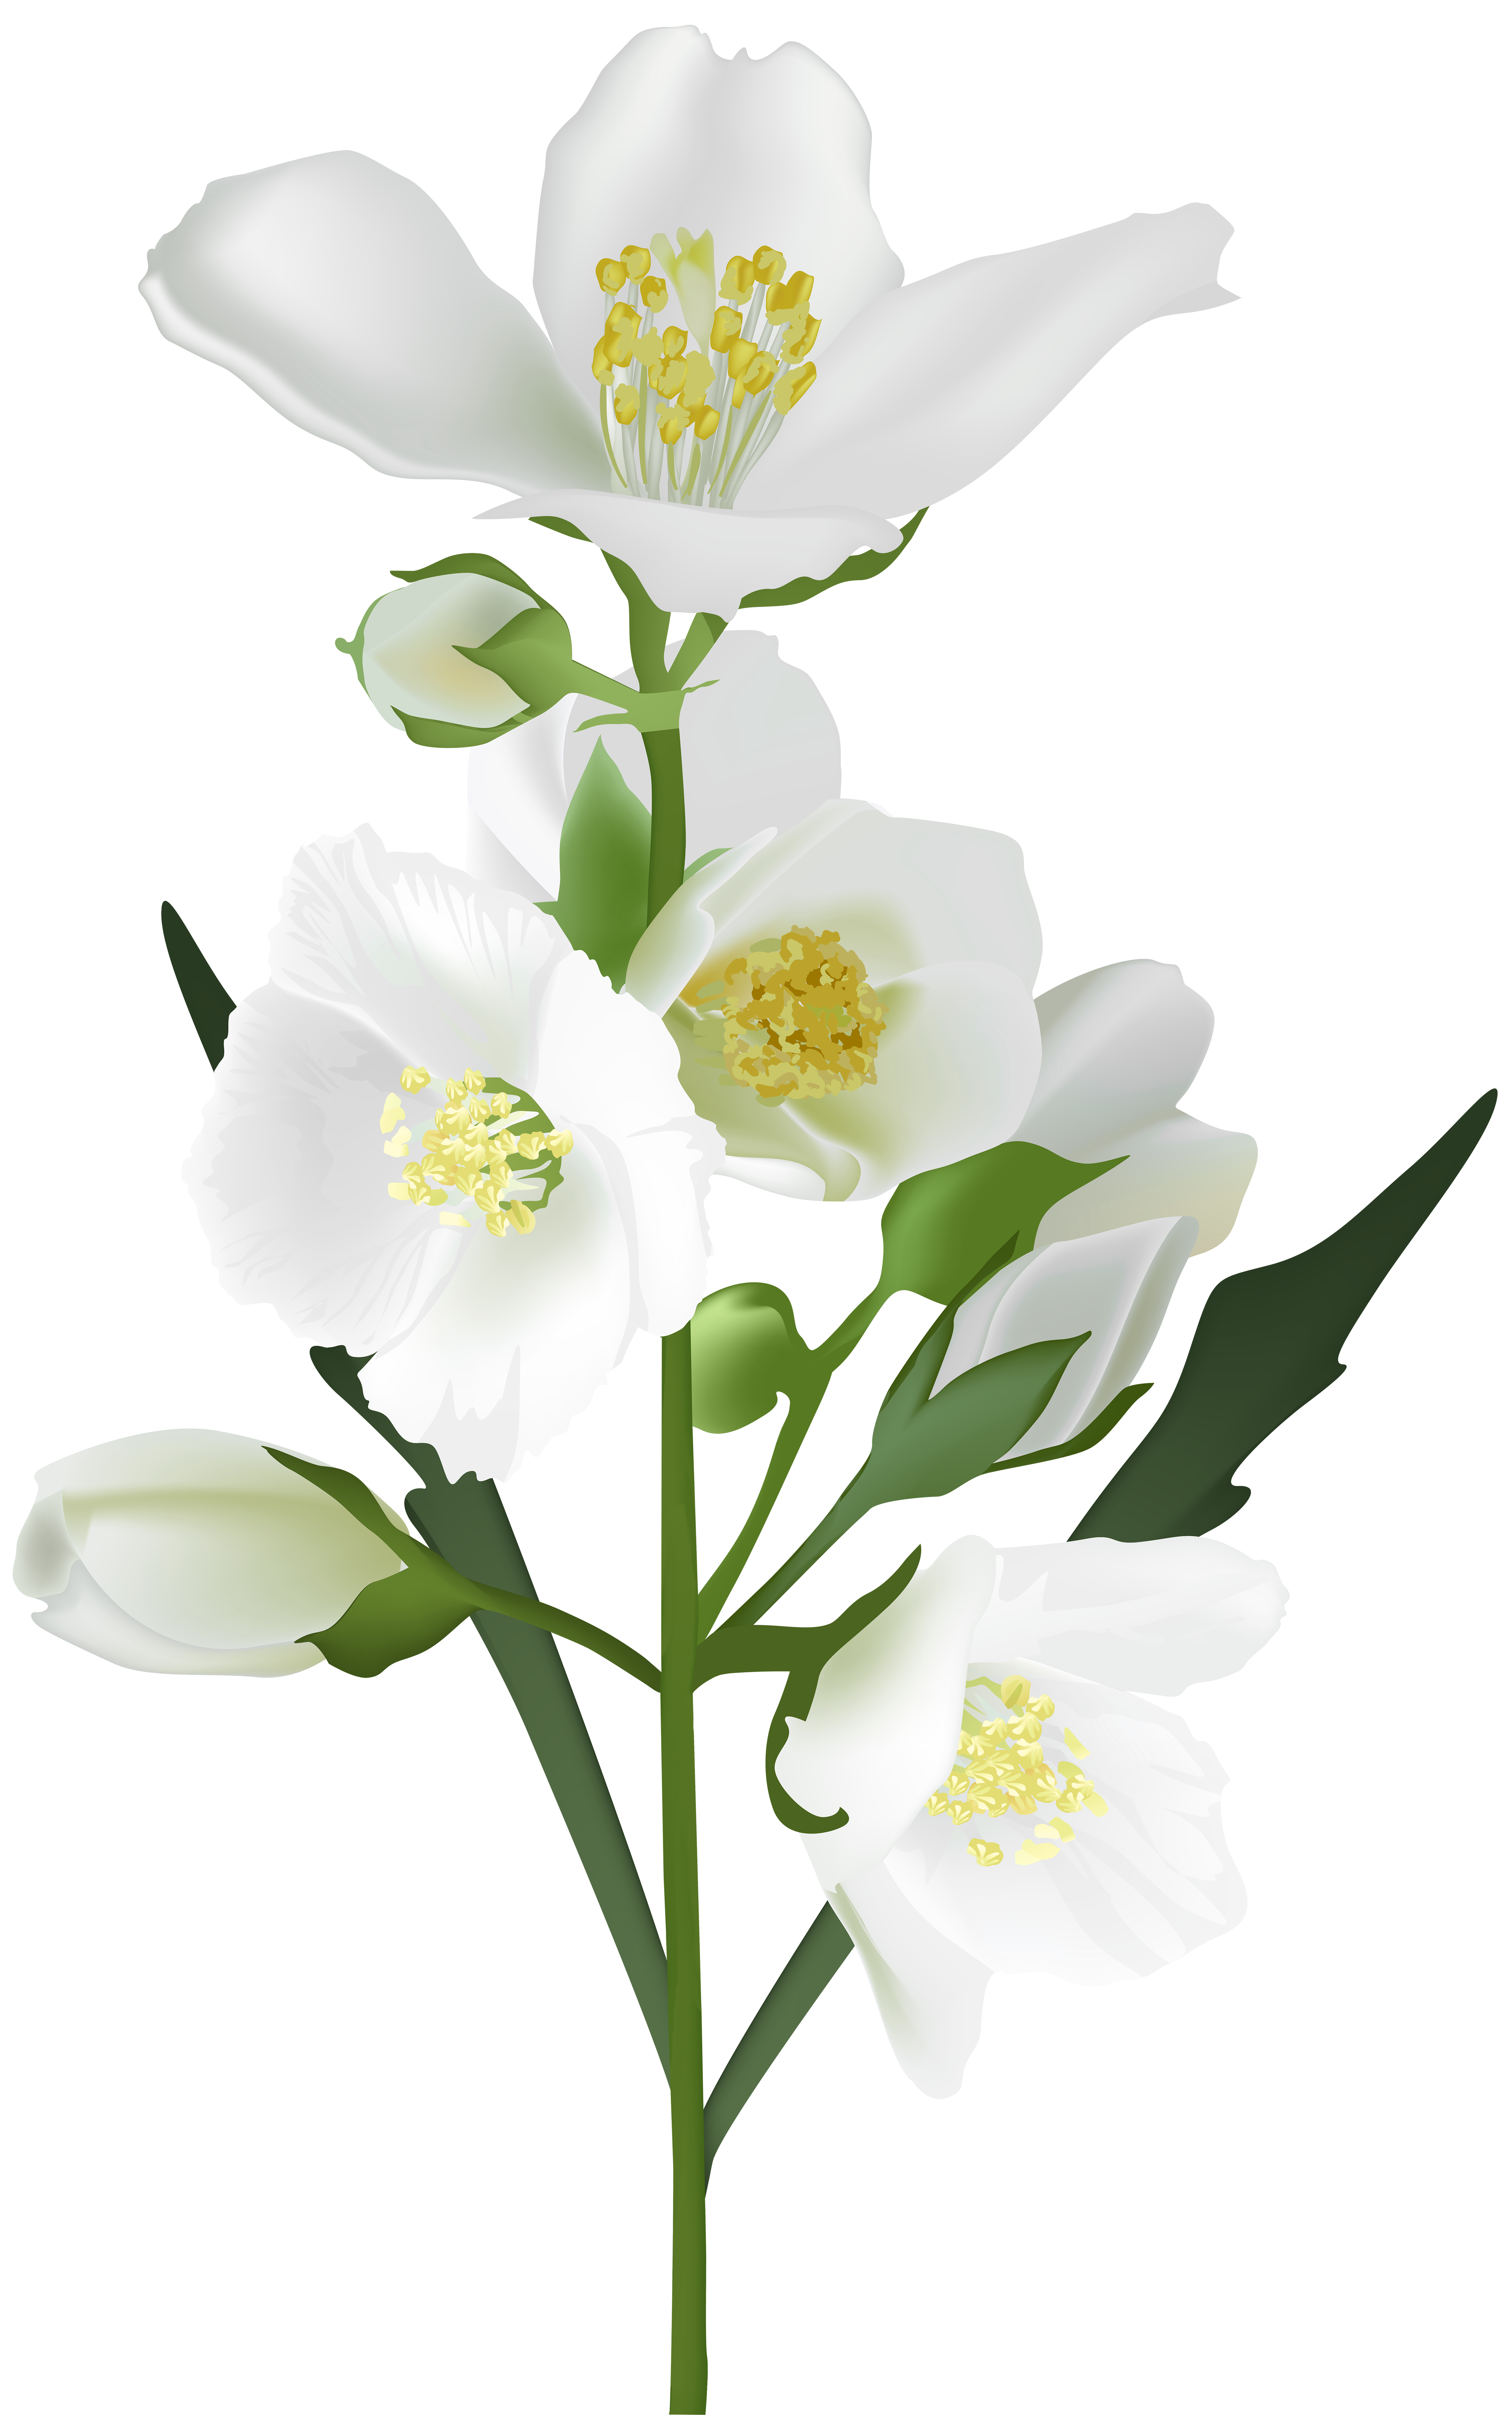 White Flower PNG Clip Art Image | Gallery Yopriceville - High ...